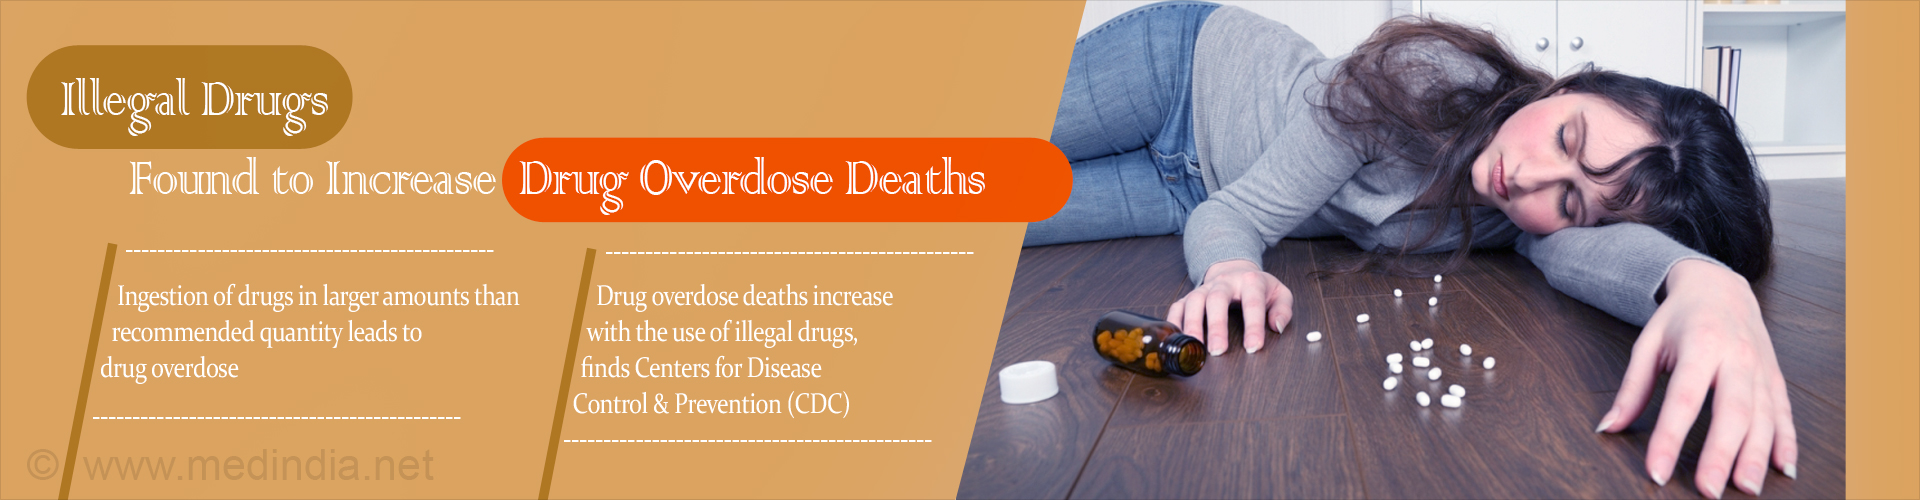 Drug Overdose Deaths Increase Due to the Use of Illegal Drugs